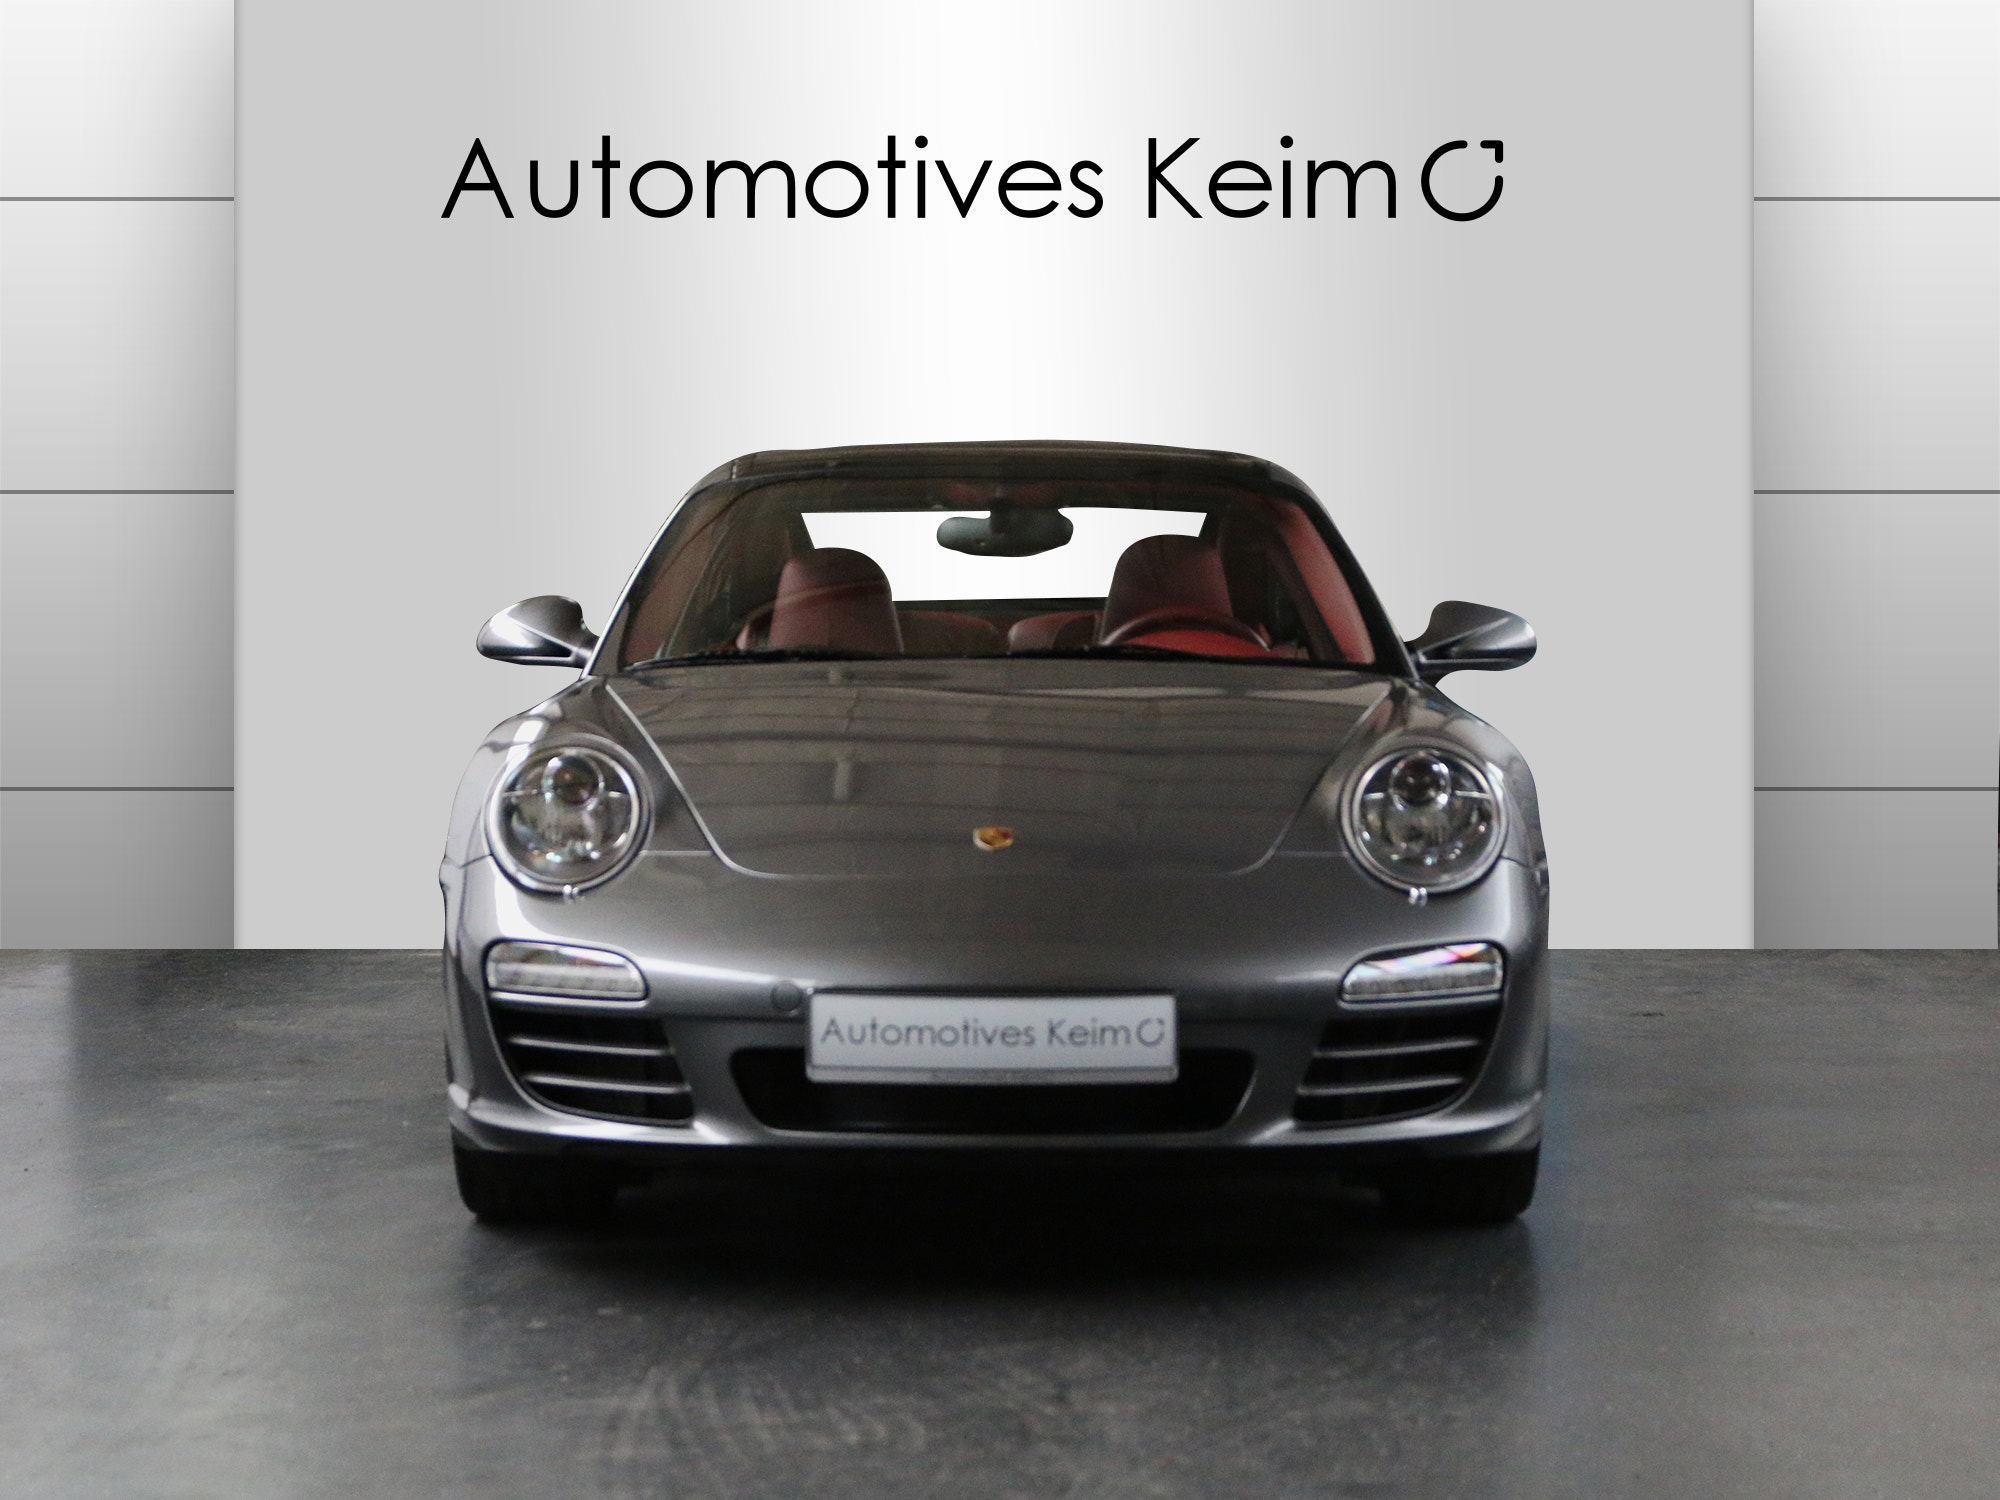 PORSCHE 911 997 Automotives Keim GmbH 63500 Seligenstadt Www.automotives Keim.de Oliver Keim 000026